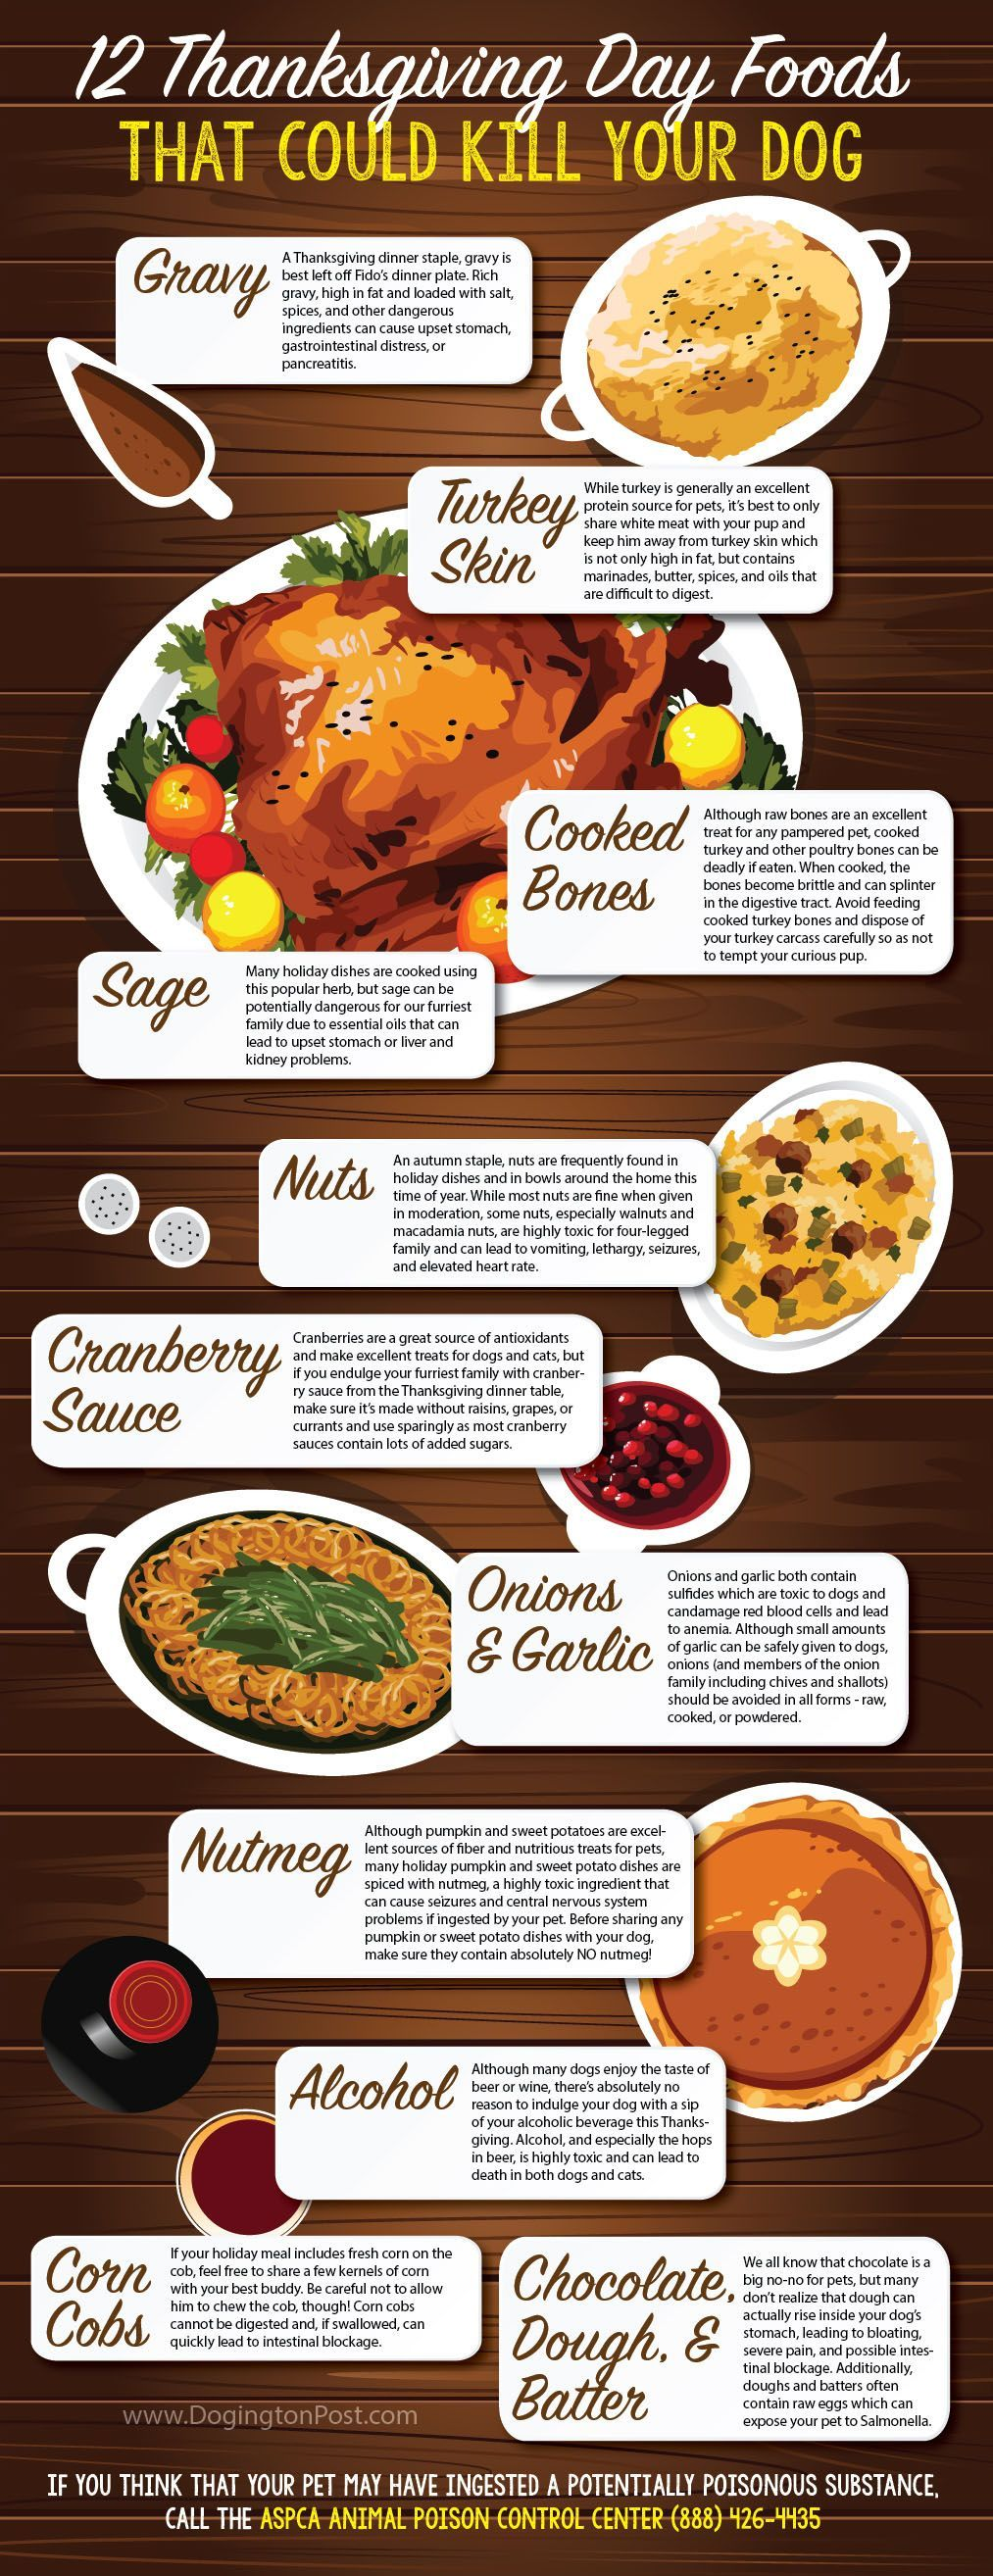 12 (Sometimes Surprising) Thanksgiving Day Foods That Can